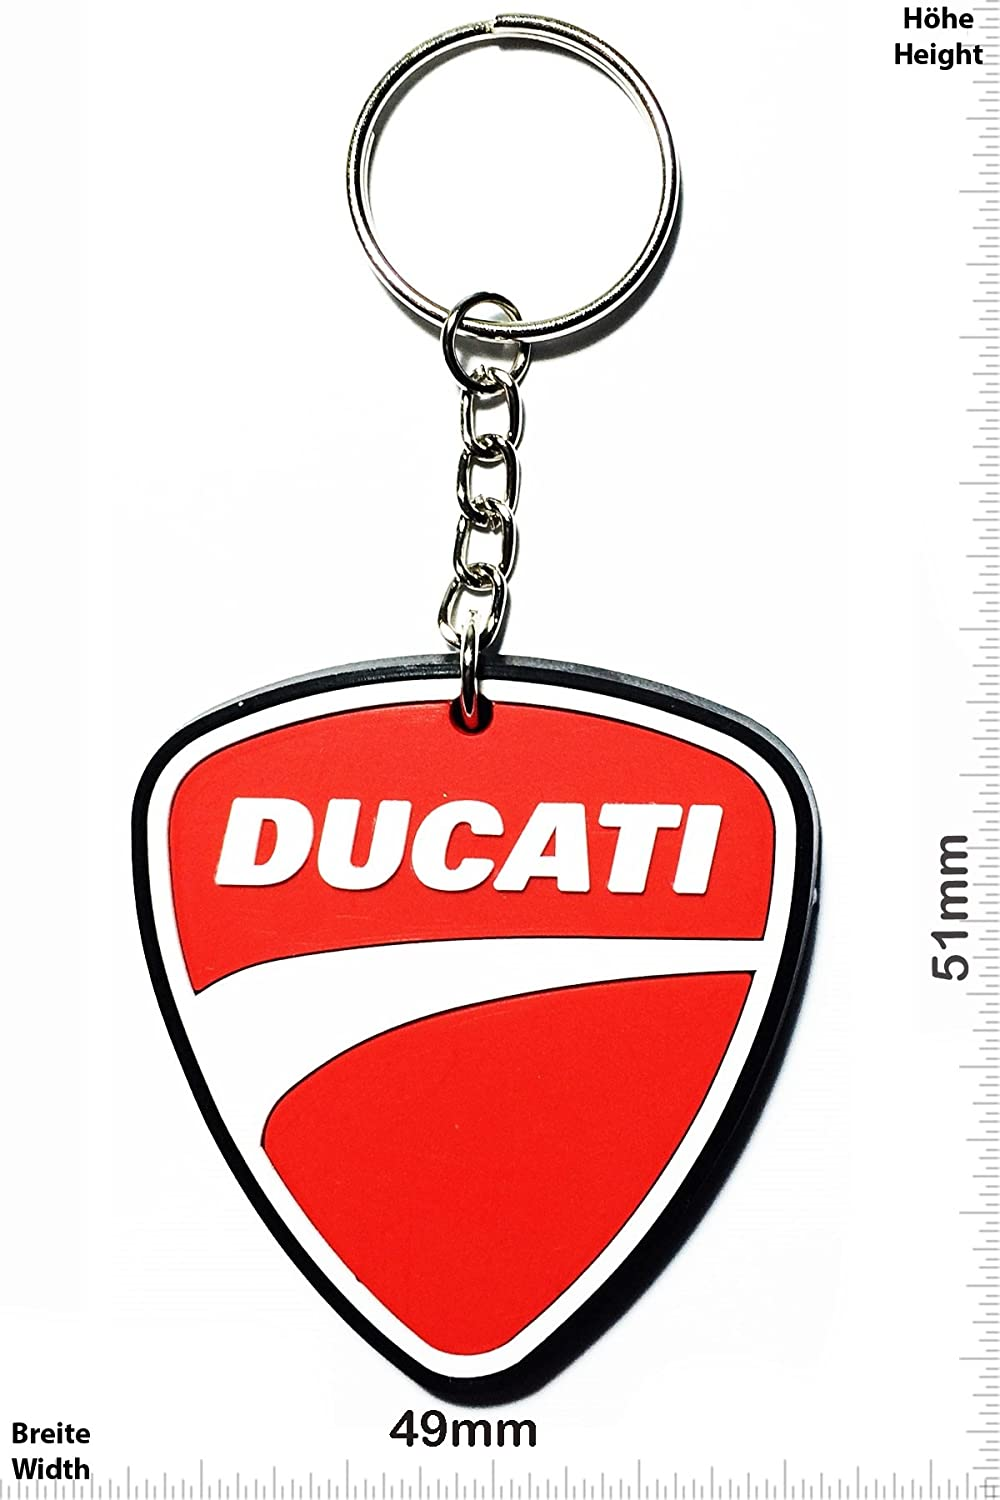 Llaveros - Keychains - Ducati - logo - black - Motocross - Motorcycle - Motorbike - Car - Key Ring - Kautschuk Rrubber Keyring - perfect also bags, ...